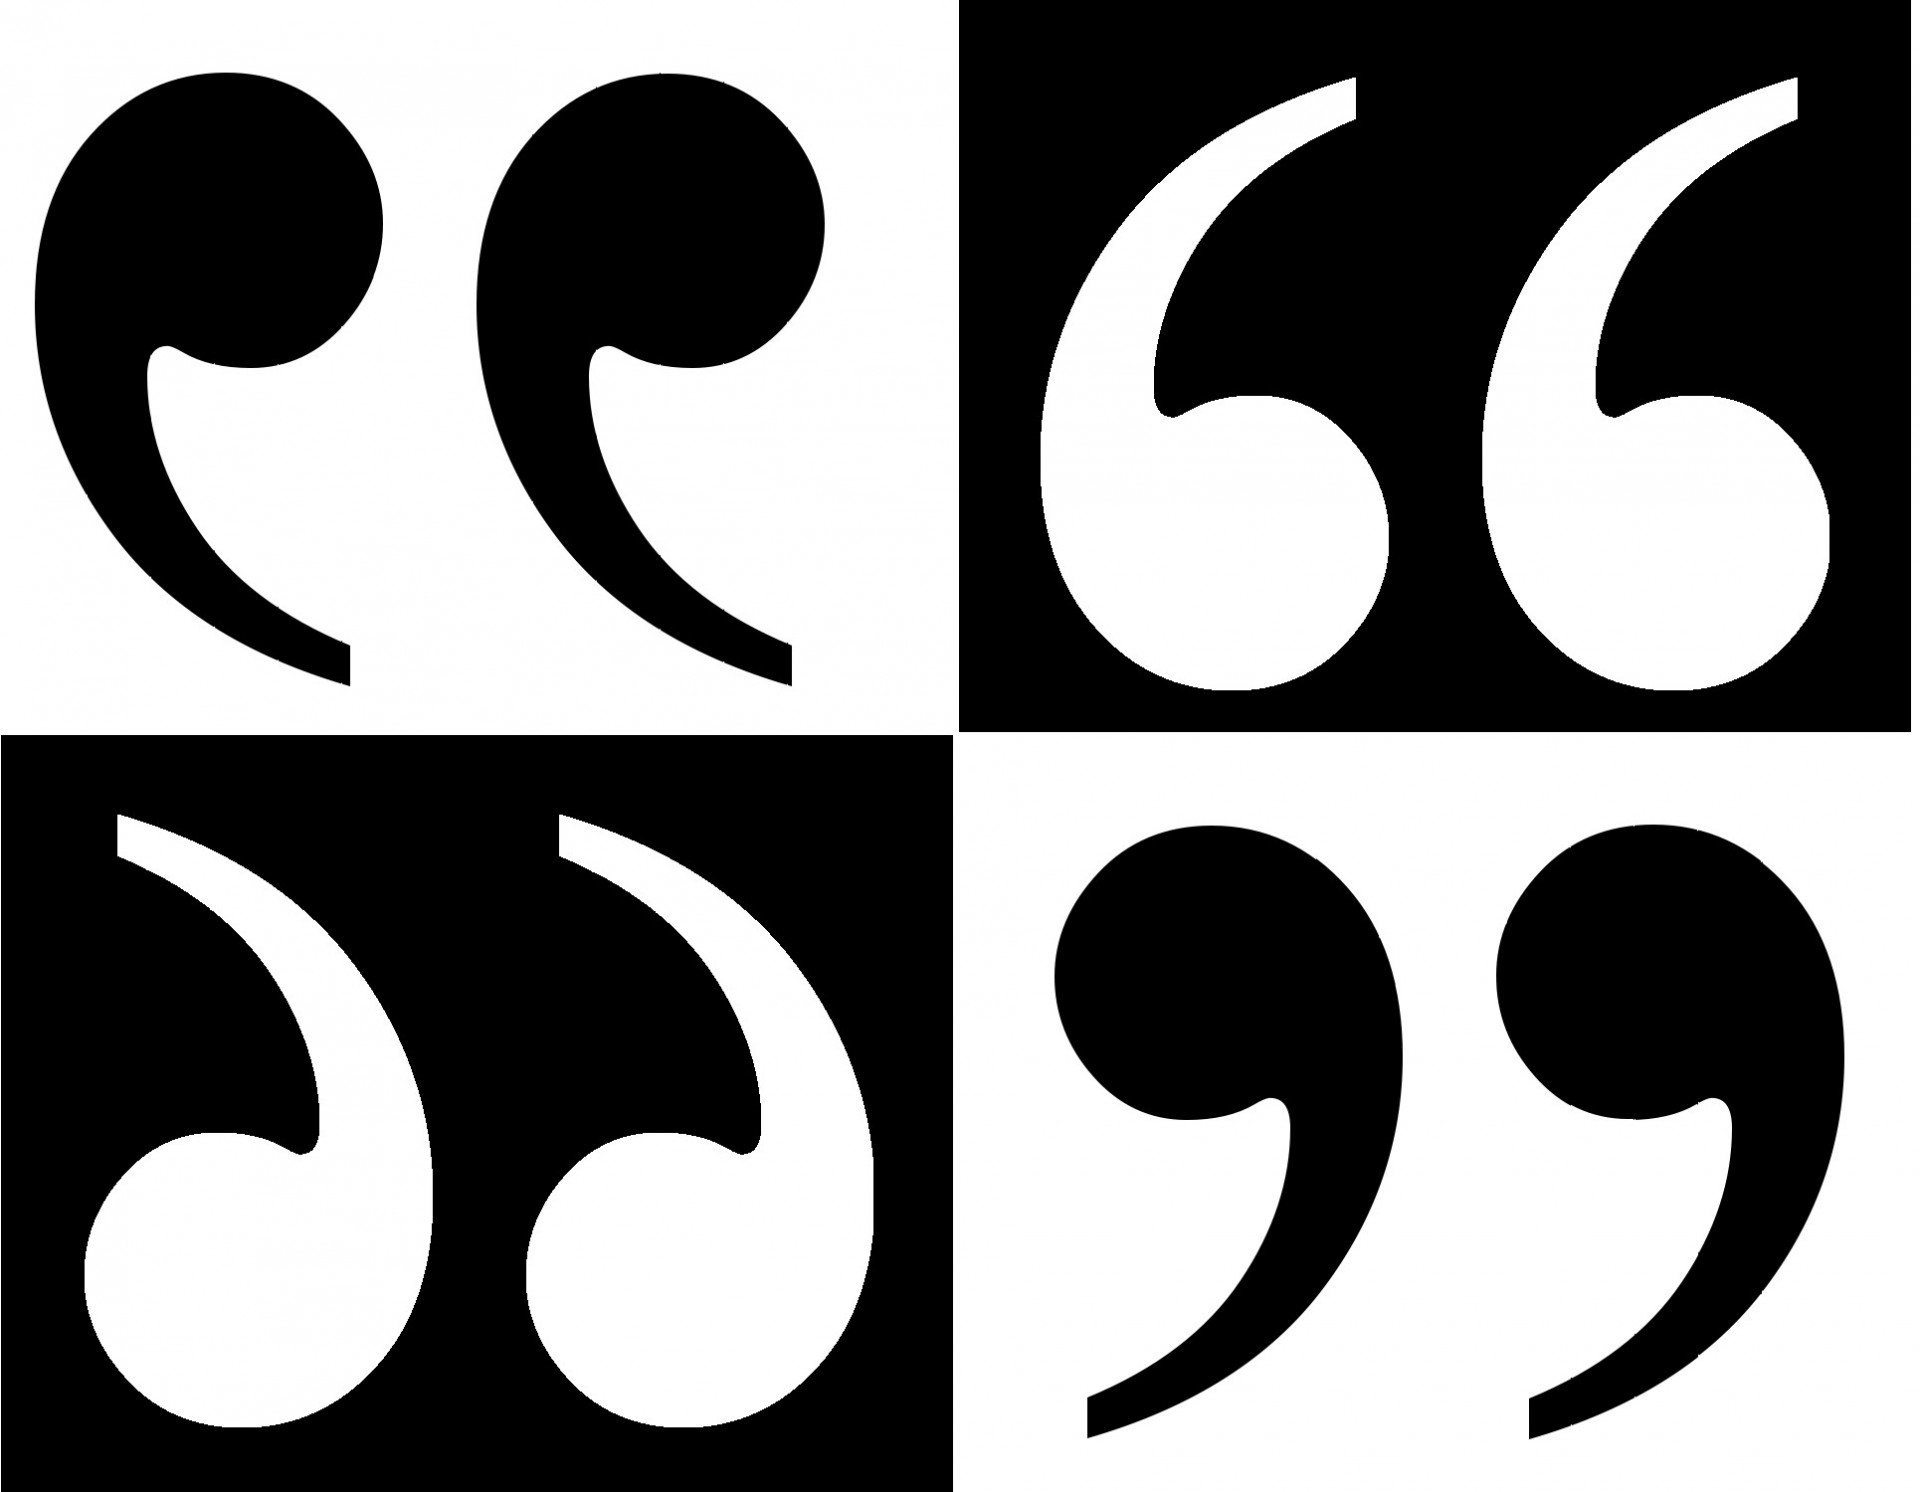 Quote Me: Proper punctuation and usage - Smiley Pete Publishing